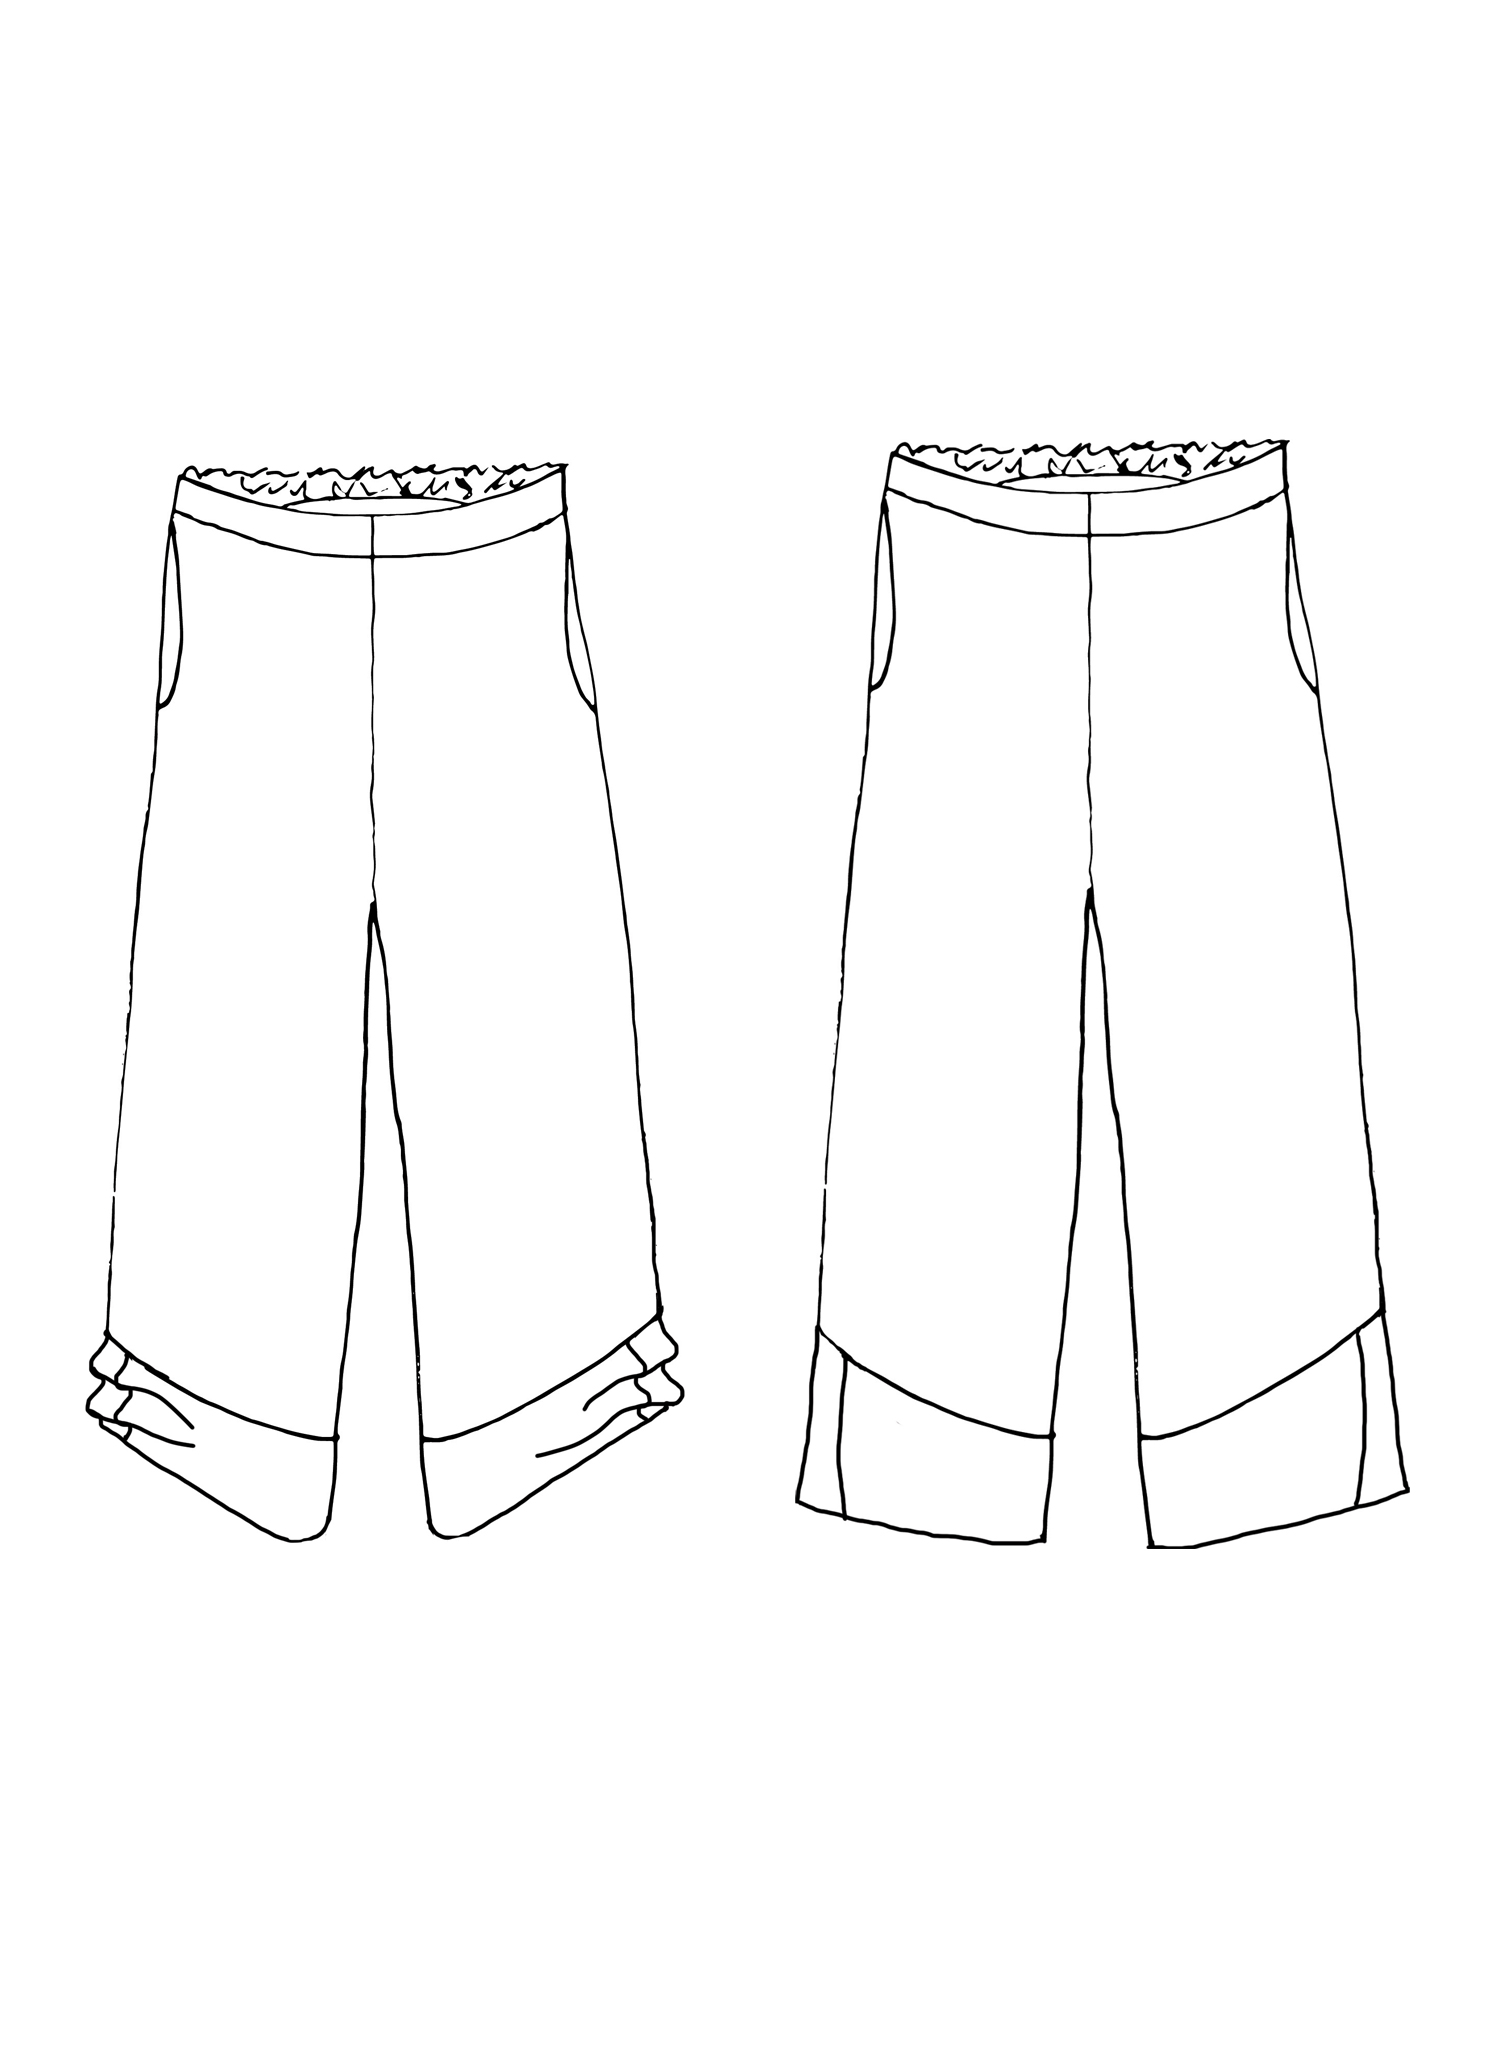 Multi-Facet Pant sketch image